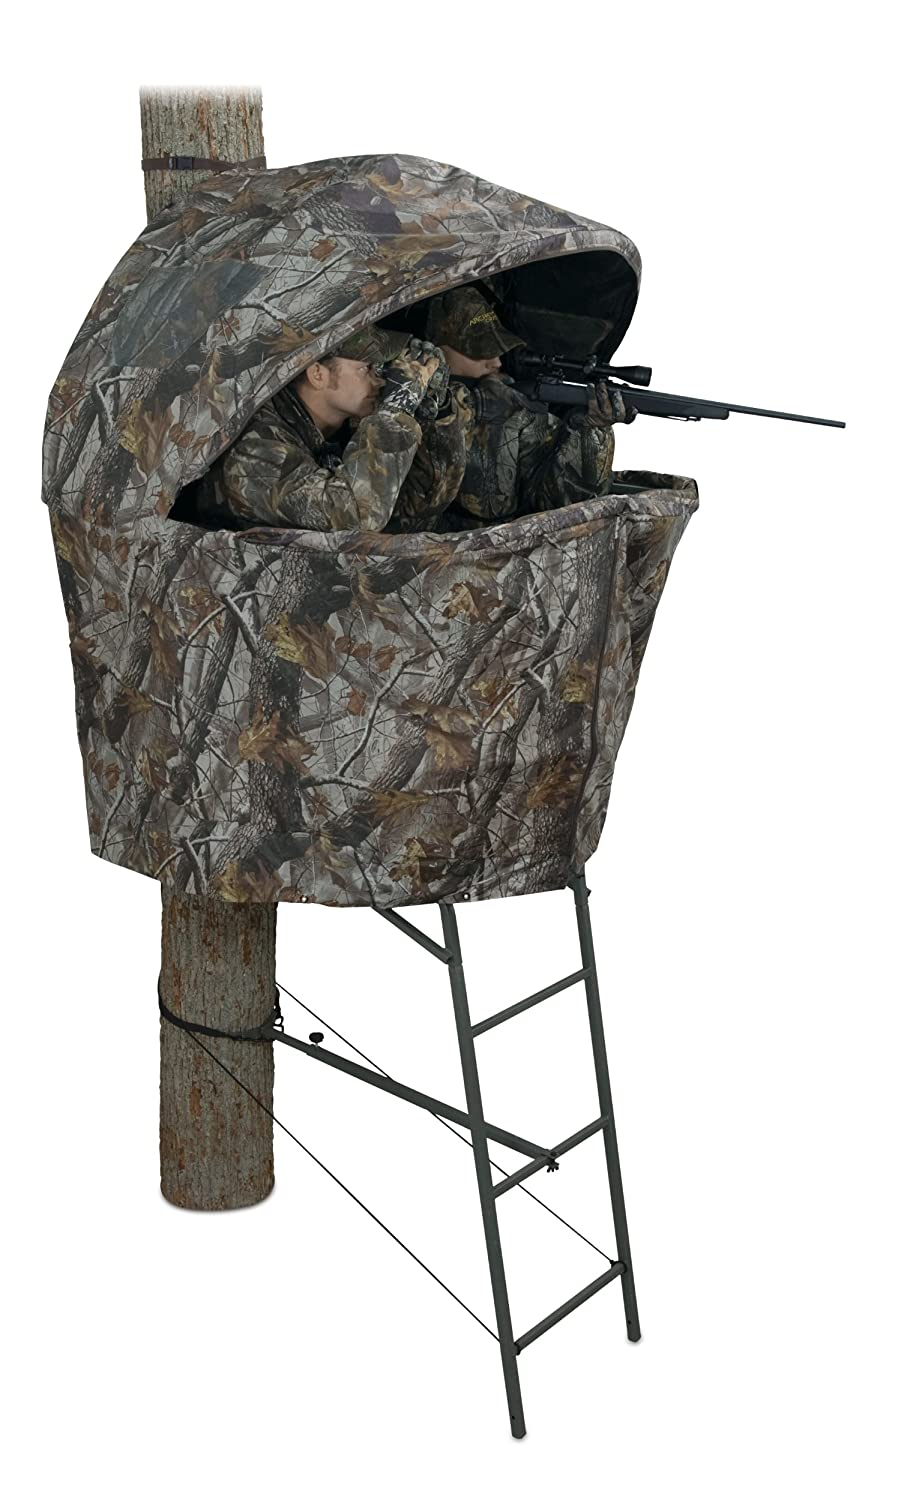 camo deer rifle wildlife hunting archery bushlan bow blind blinds supply texas atascosa